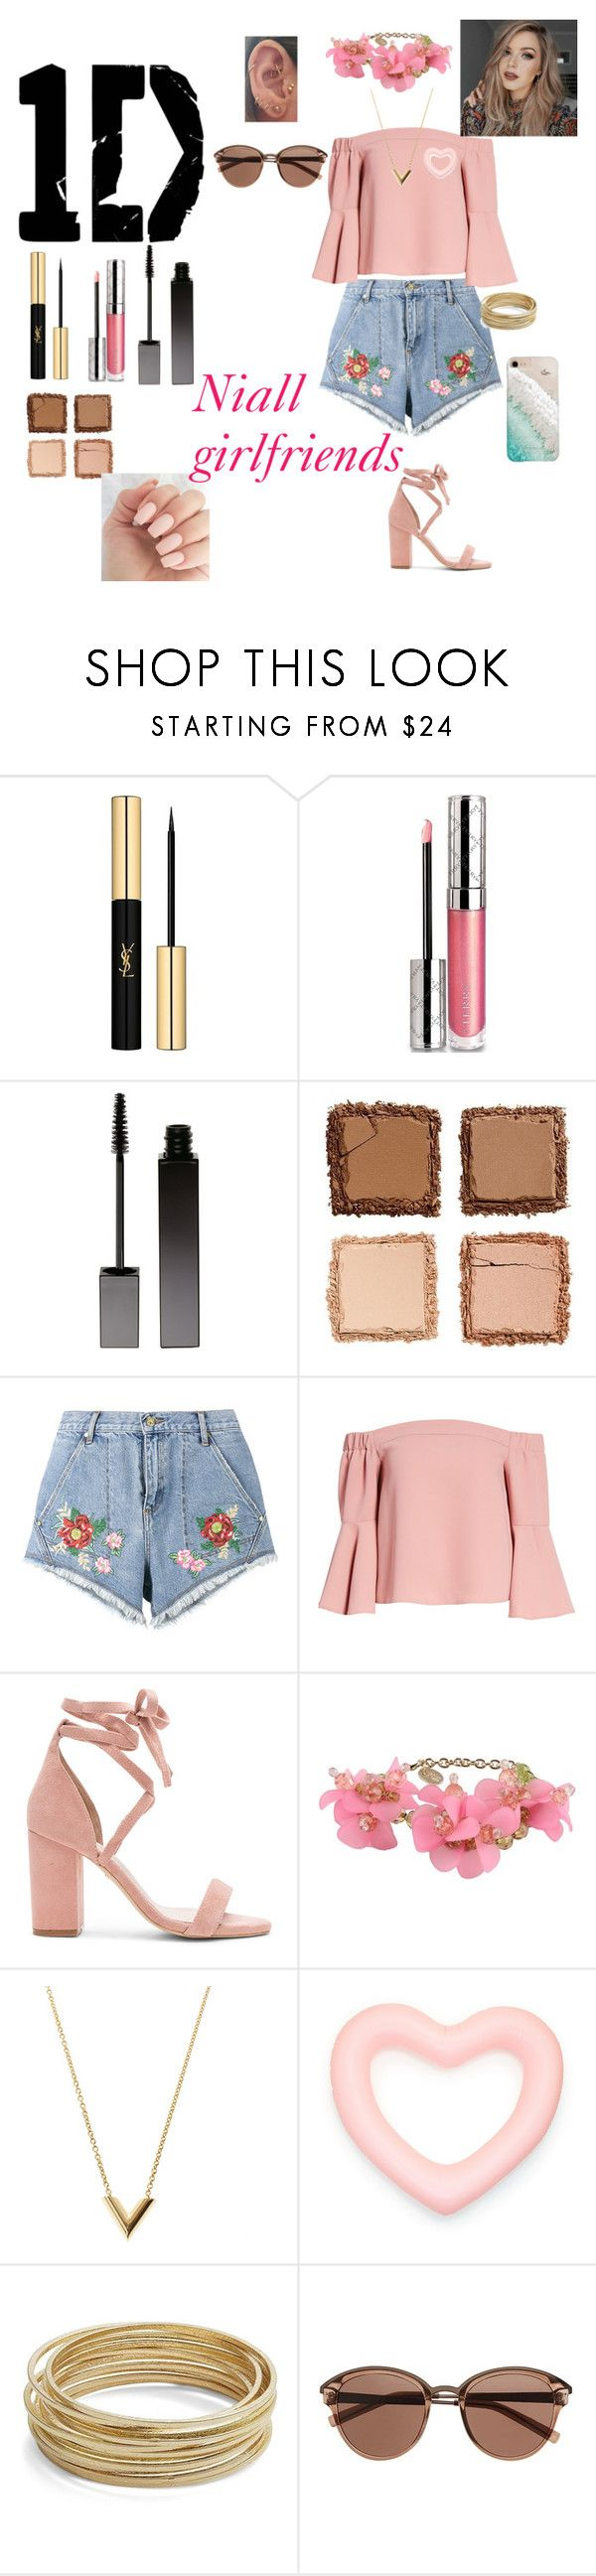 """""""Niall's Girlfriends"""" by marinecollin on Polyvore featuring mode, Yves Saint Laurent, By Terry, Serge Lutens, Urban Decay, House of Holland, Topshop, Raye, RED Valentino et Louis Vuitton"""